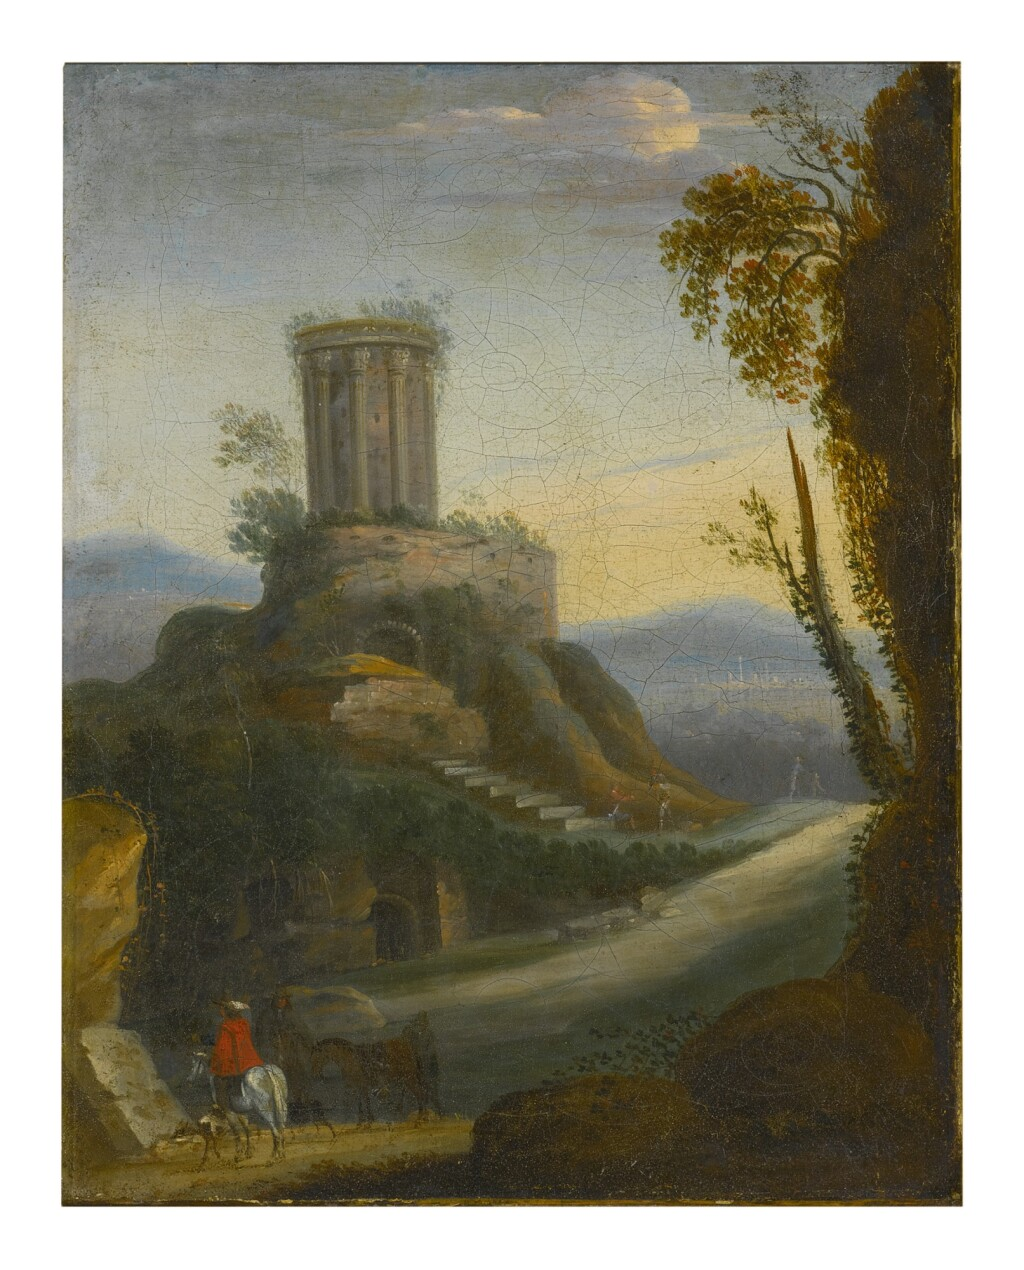 FOLLOWER OF HERMAN VAN SWANEVELT, 18TH CENTURY   LANDSCAPE WITH HORSEMAN AND CLASSICAL RUINS BEYOND